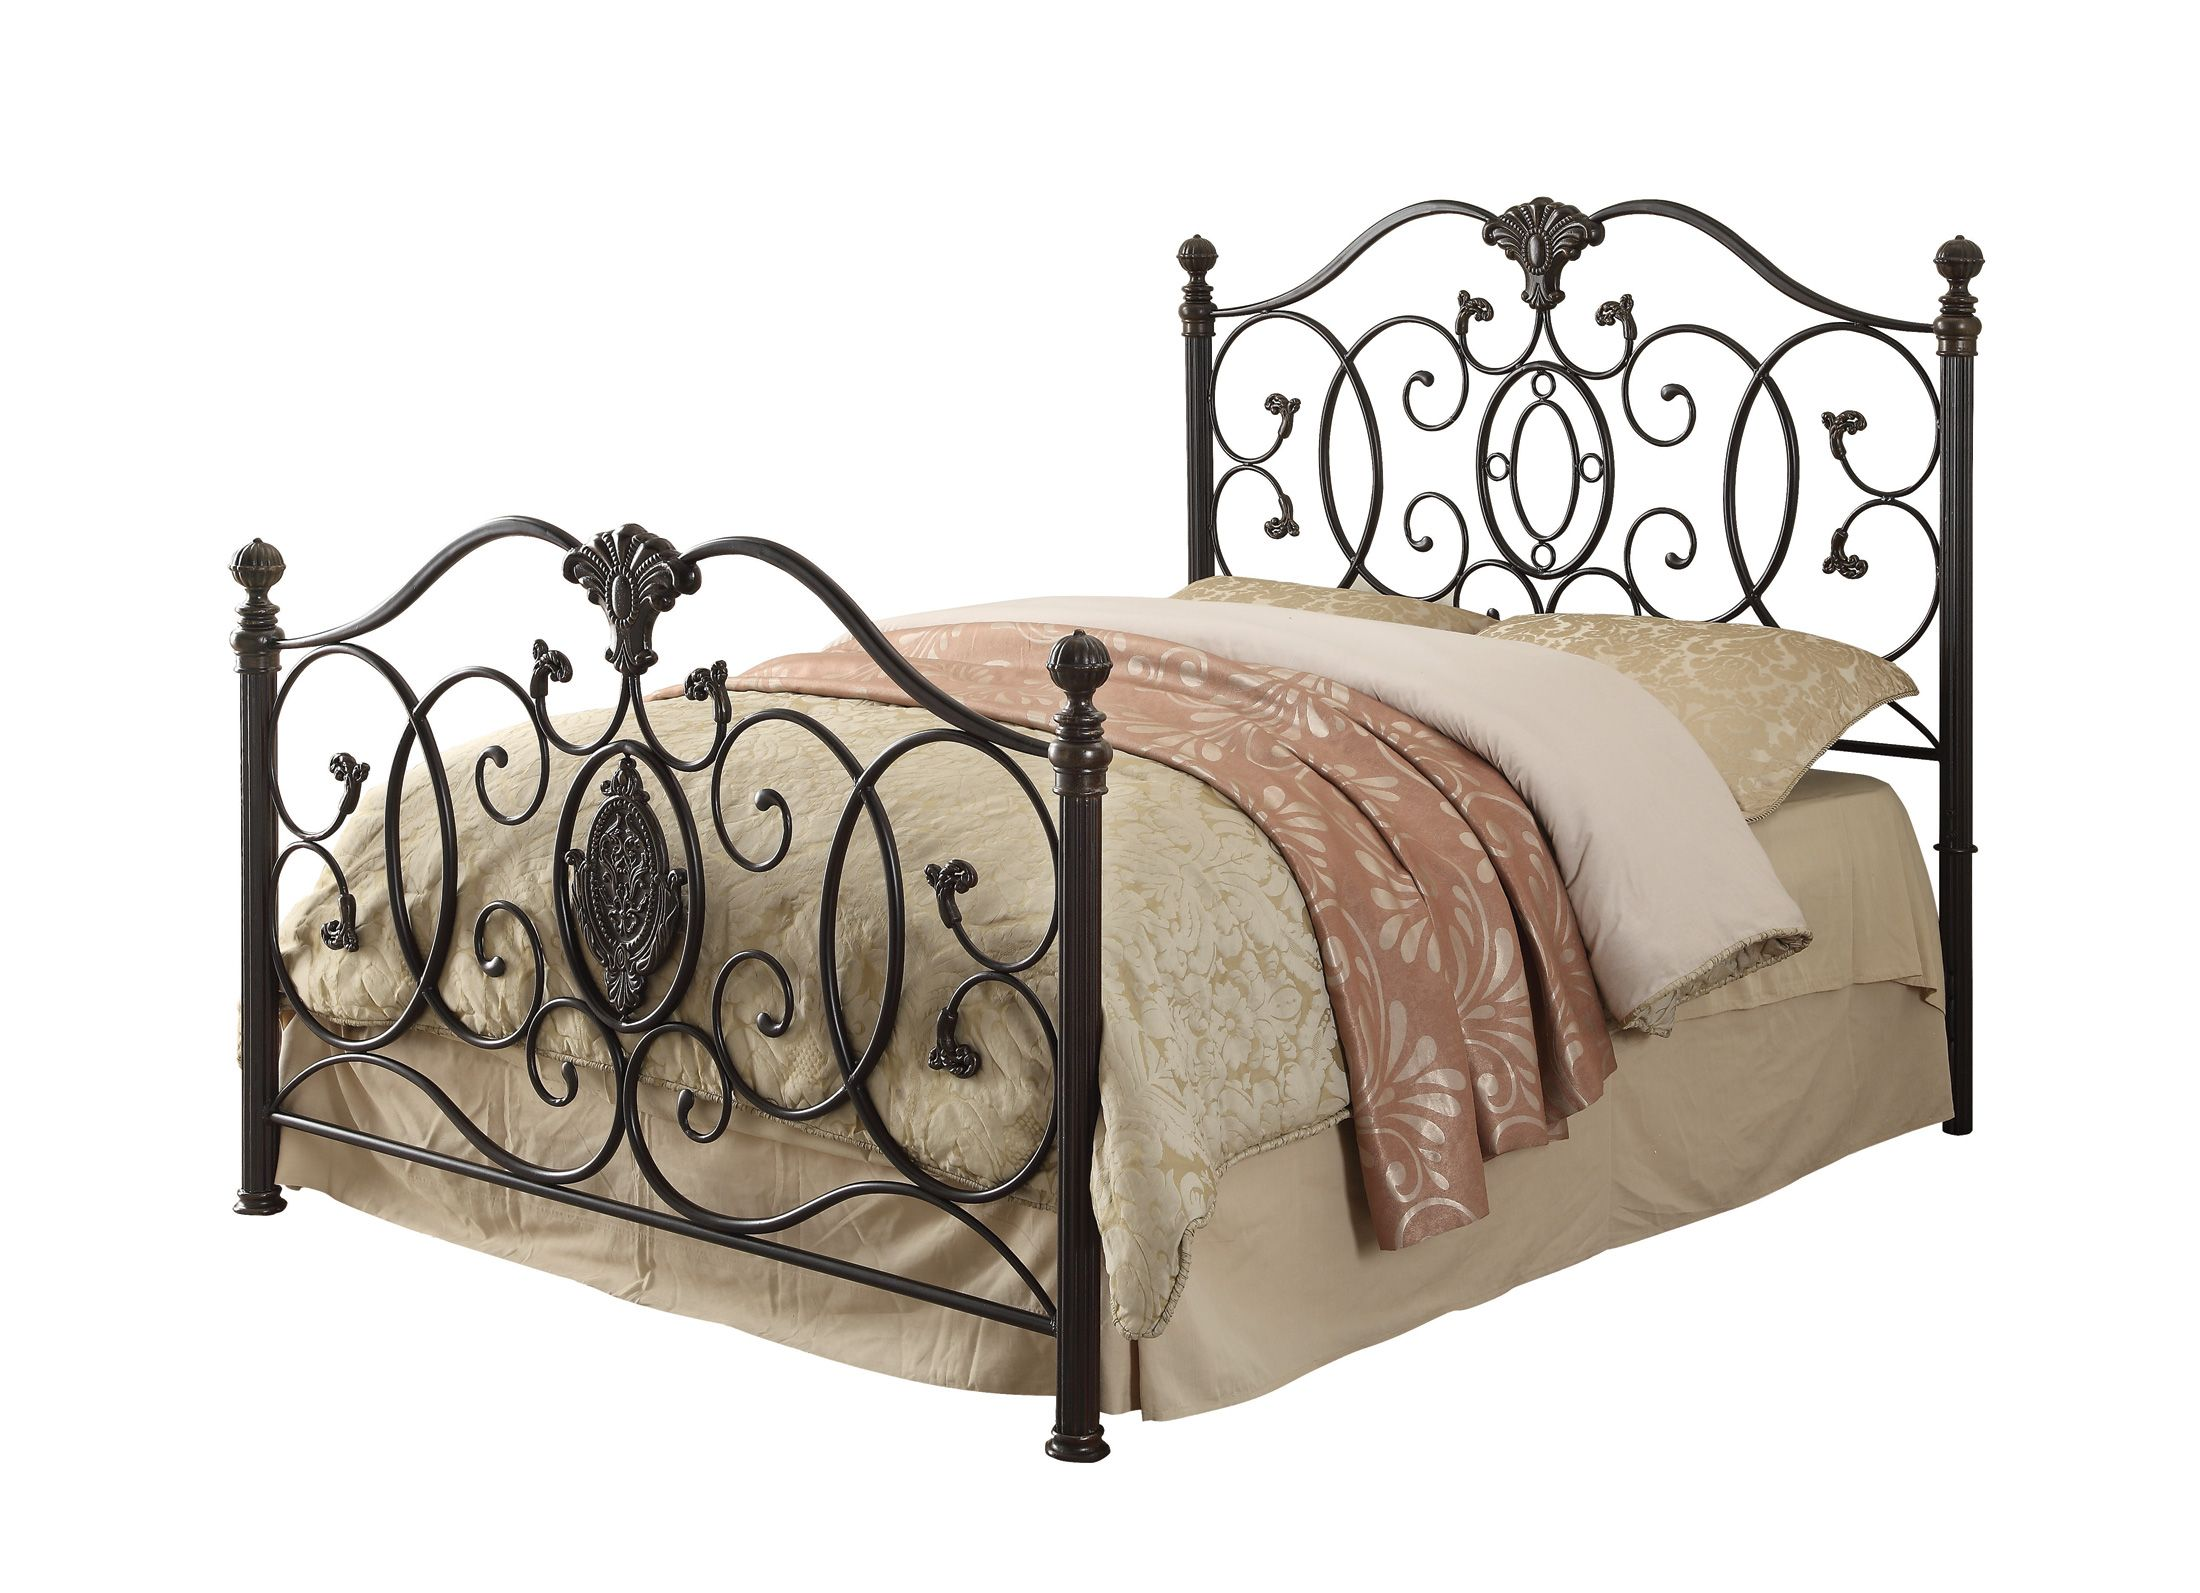 Gianna traditional black brush gold metal full bed wbed frame